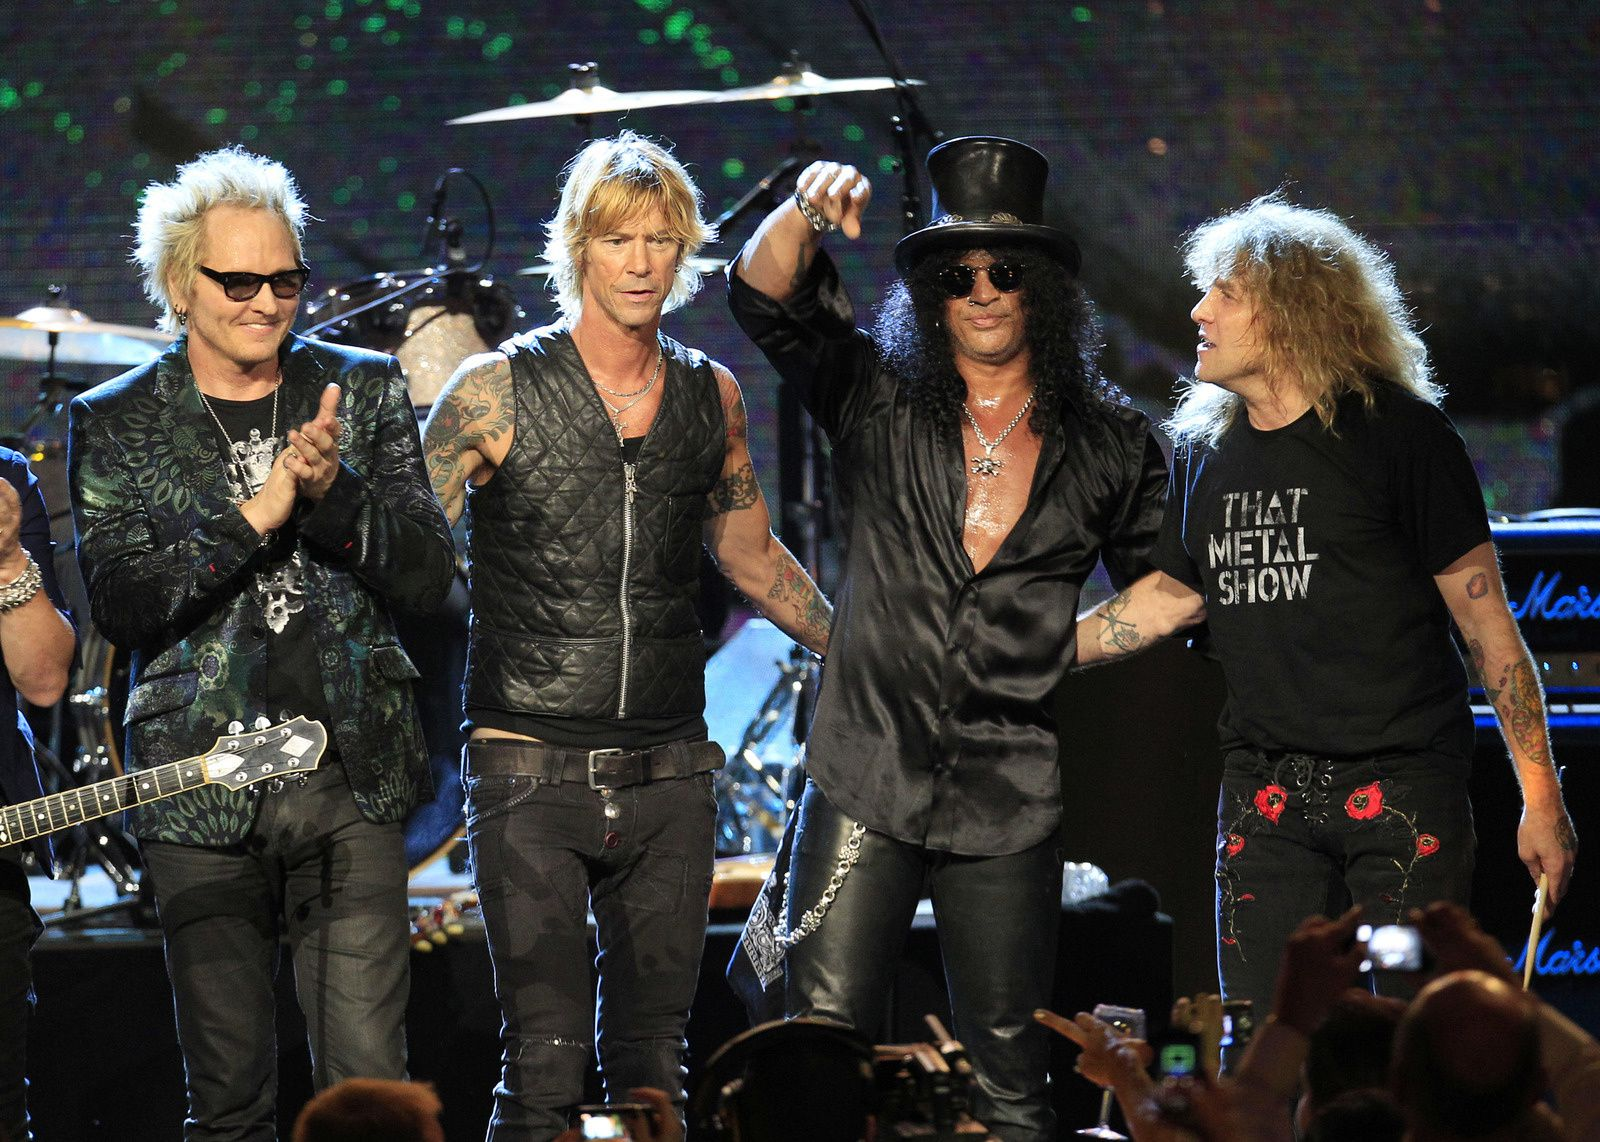 On April 14, 2012, former Guns N' Roses members Slash, Duff McKagan, Steven Adler and Matt Sorum all reunited (but without axl rose) at the Rock and Roll Hall of Fame, their first year of eligibility.